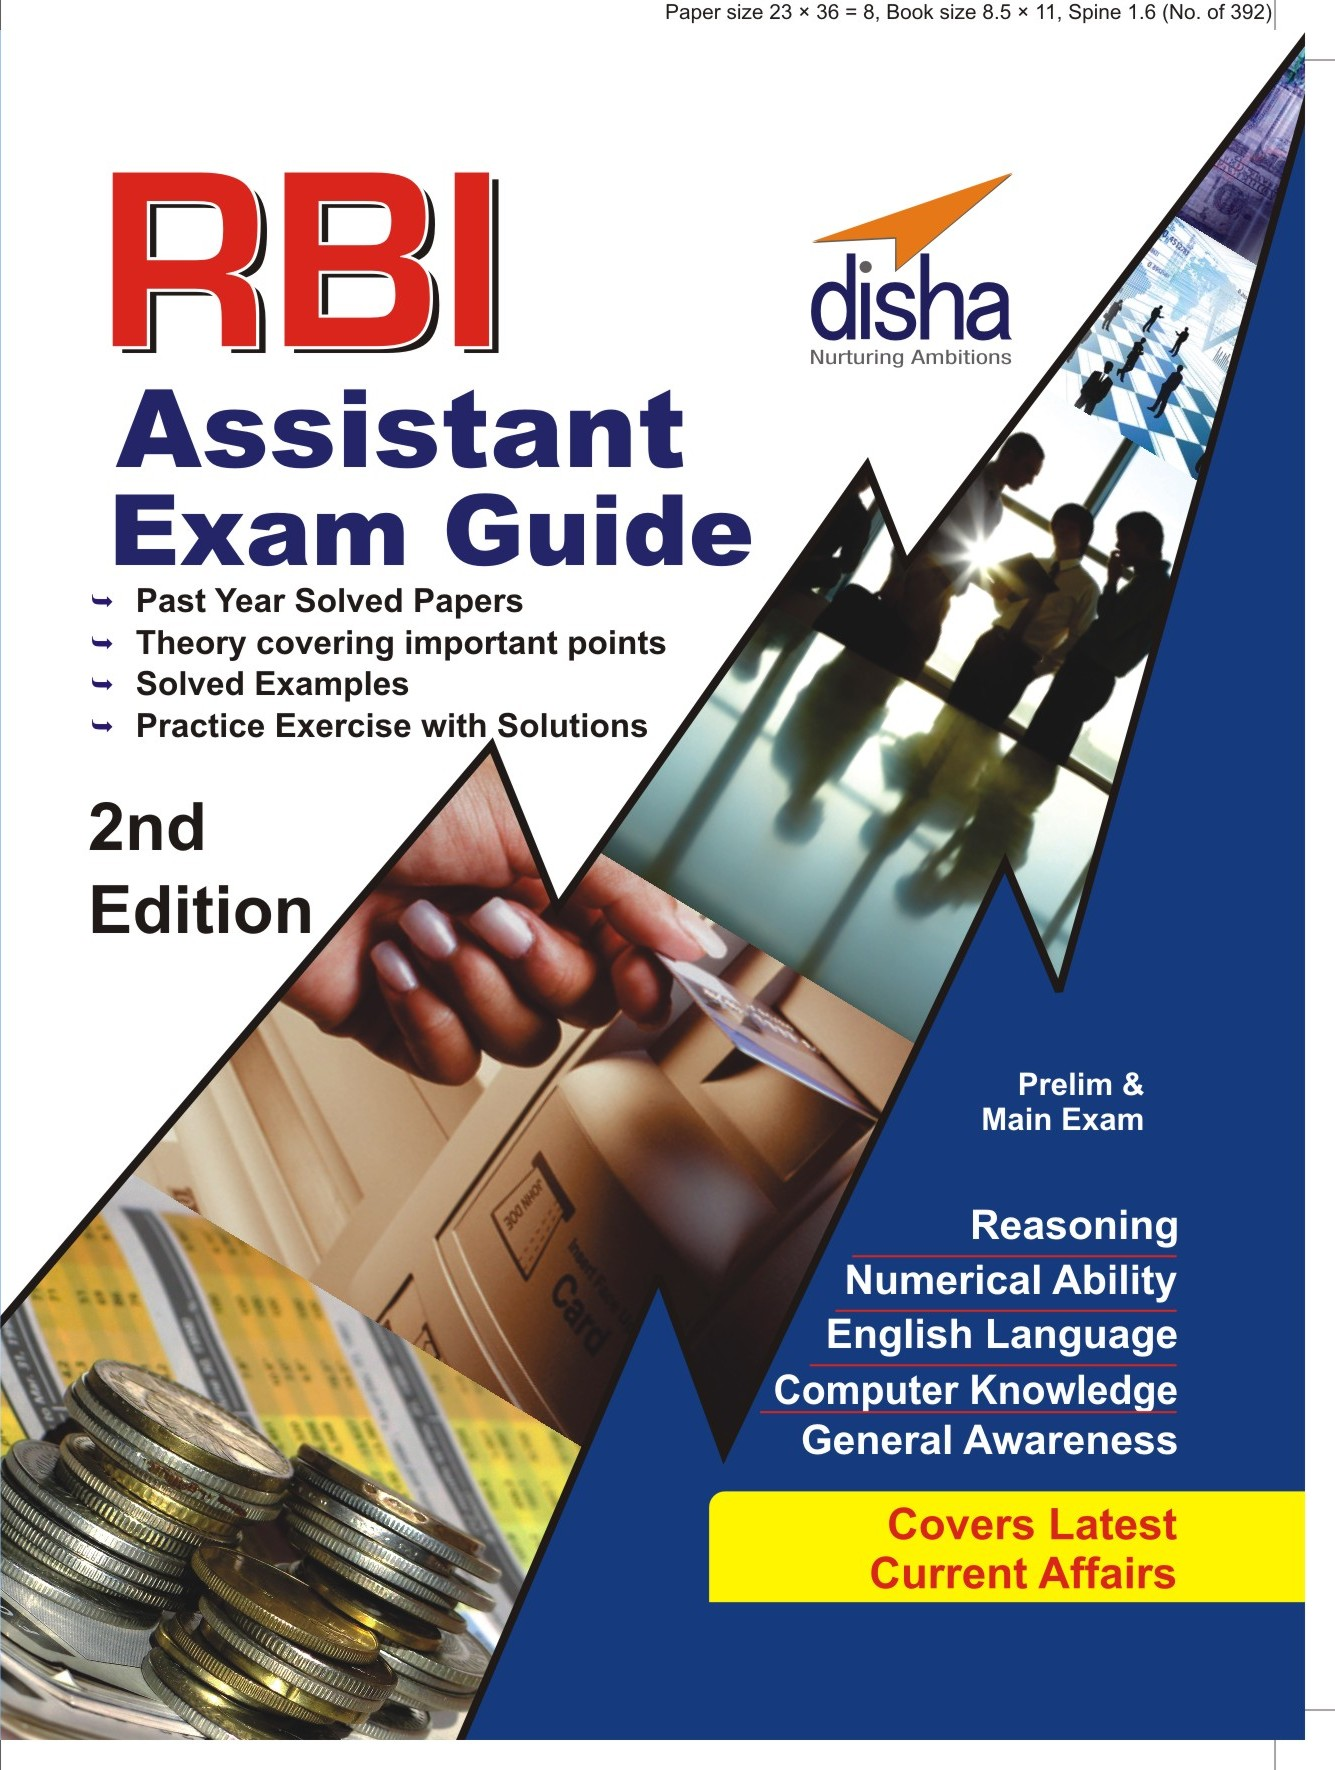 RBI Assistant Guide for Prelims and Mains Examination